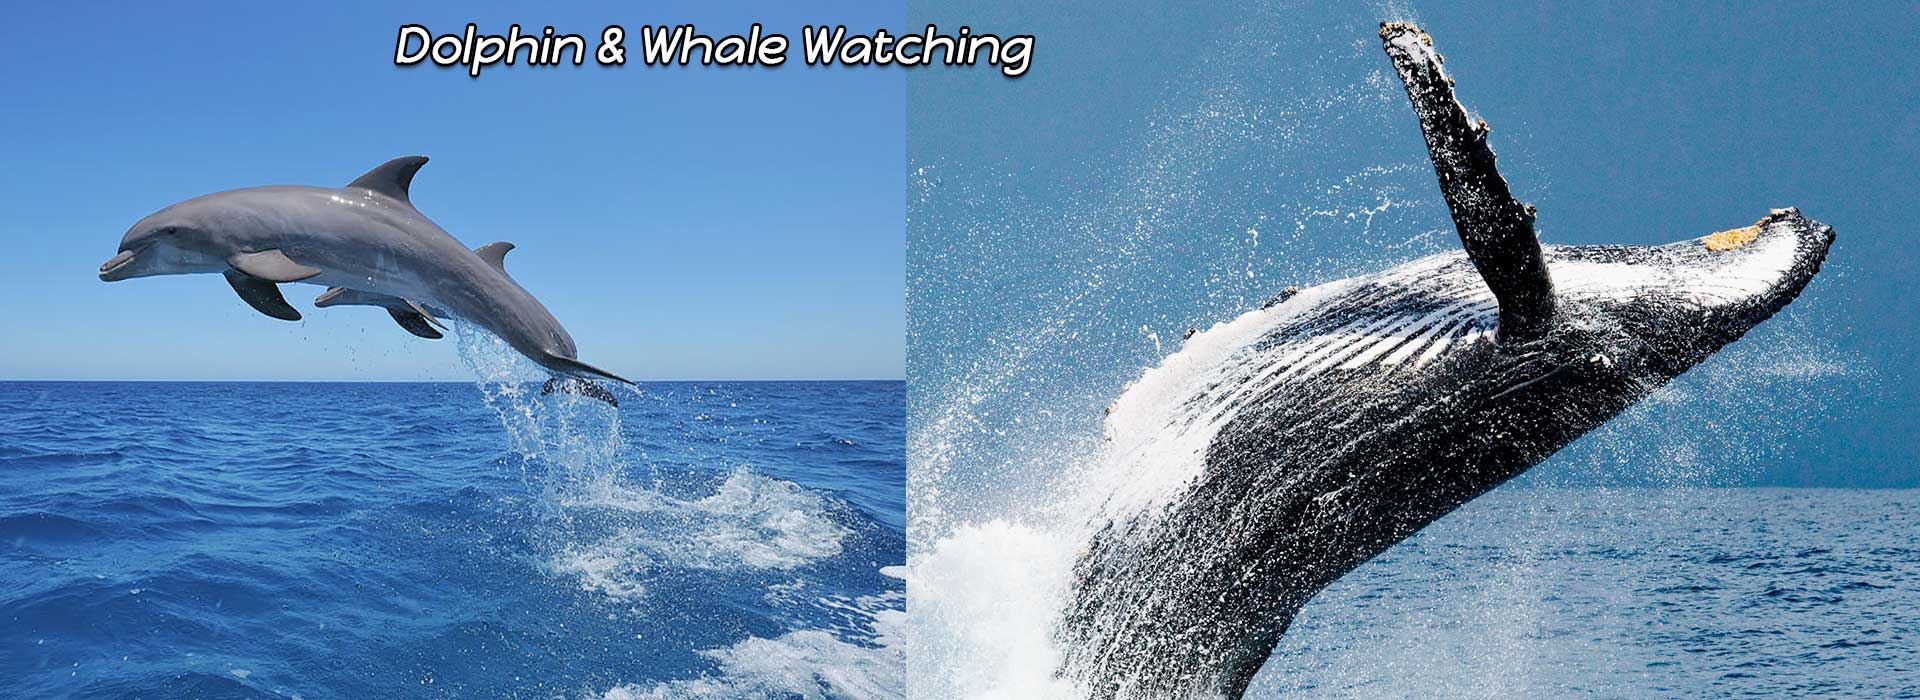 Dolphin-&-Whale-Watching